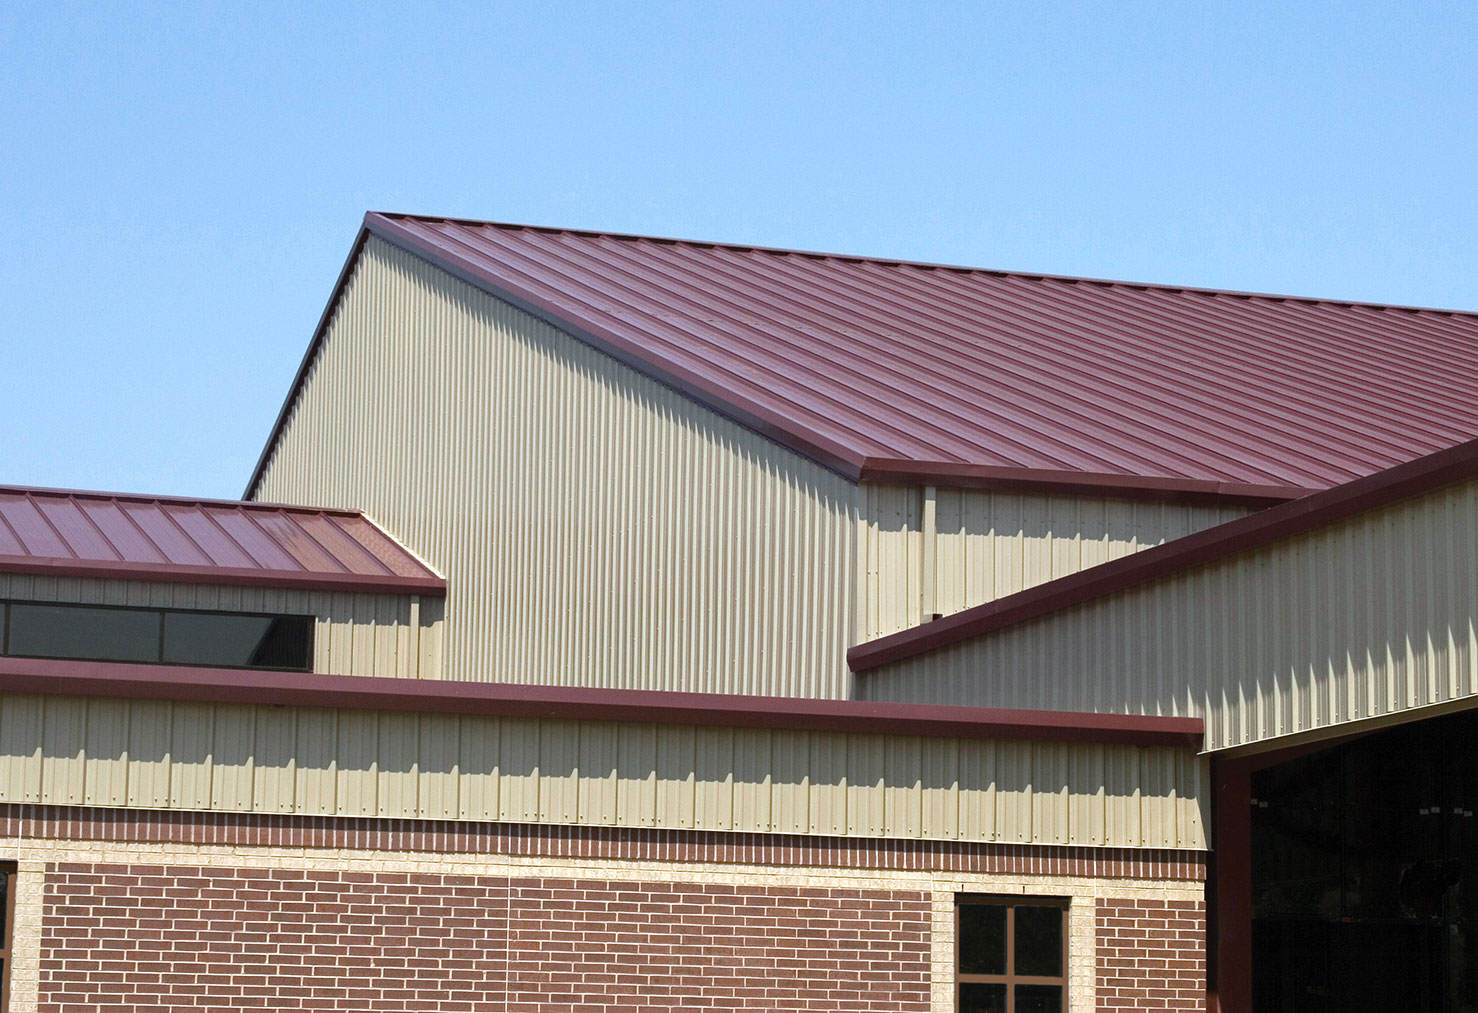 Commercial Roofing Panels For Metal Buildings And Warehouses